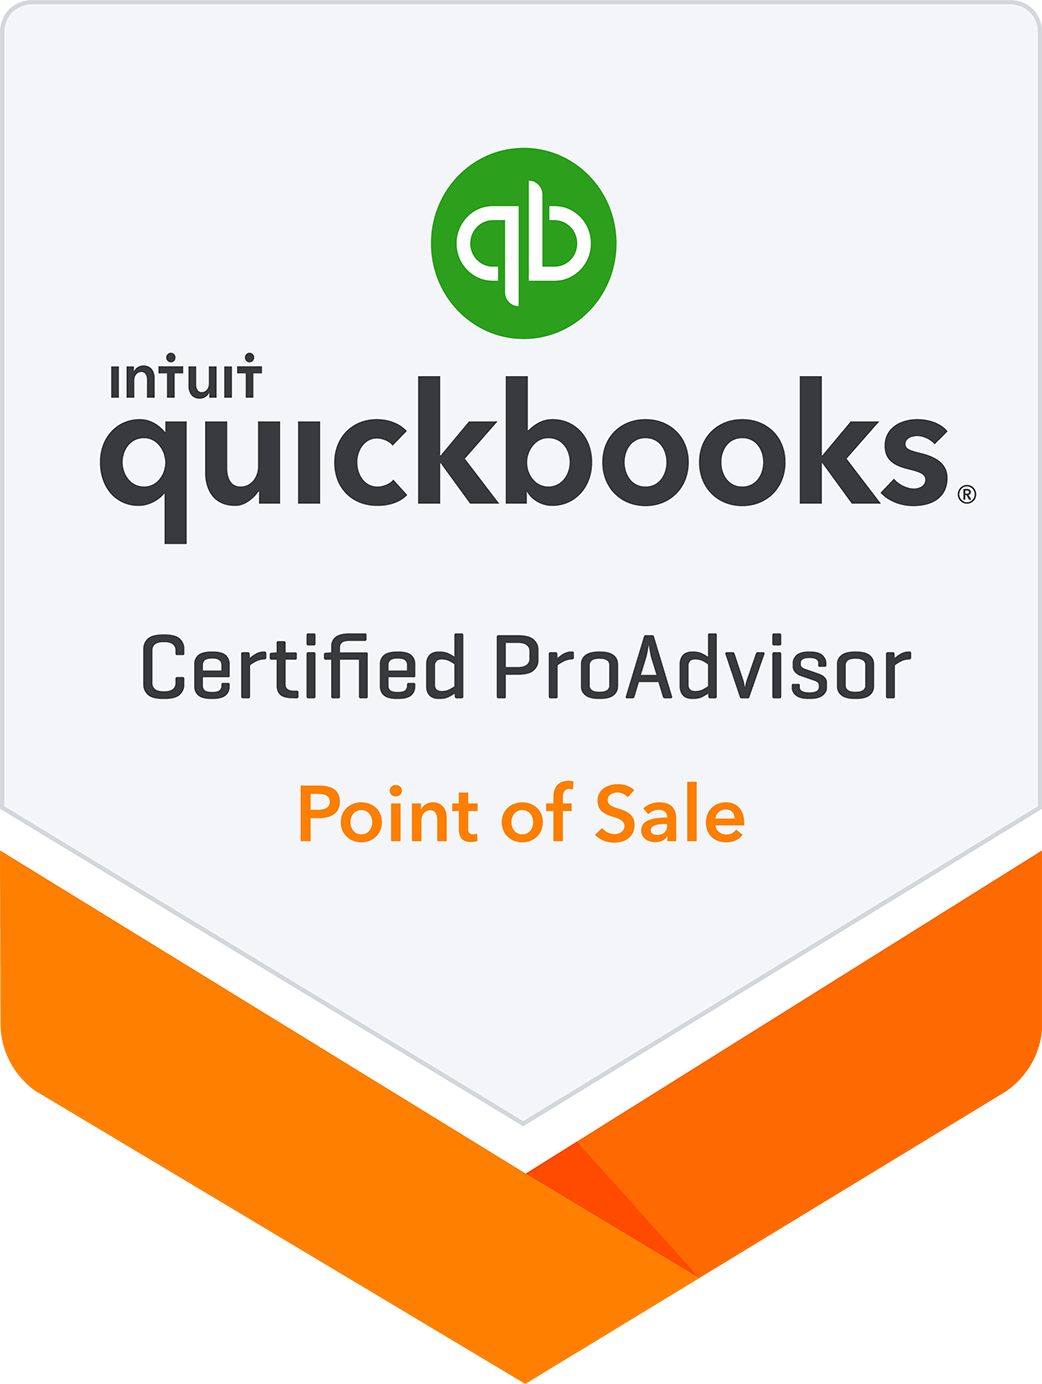 QuickBooks Certified ProAdvisor - QuickBooks Enterprise Certification